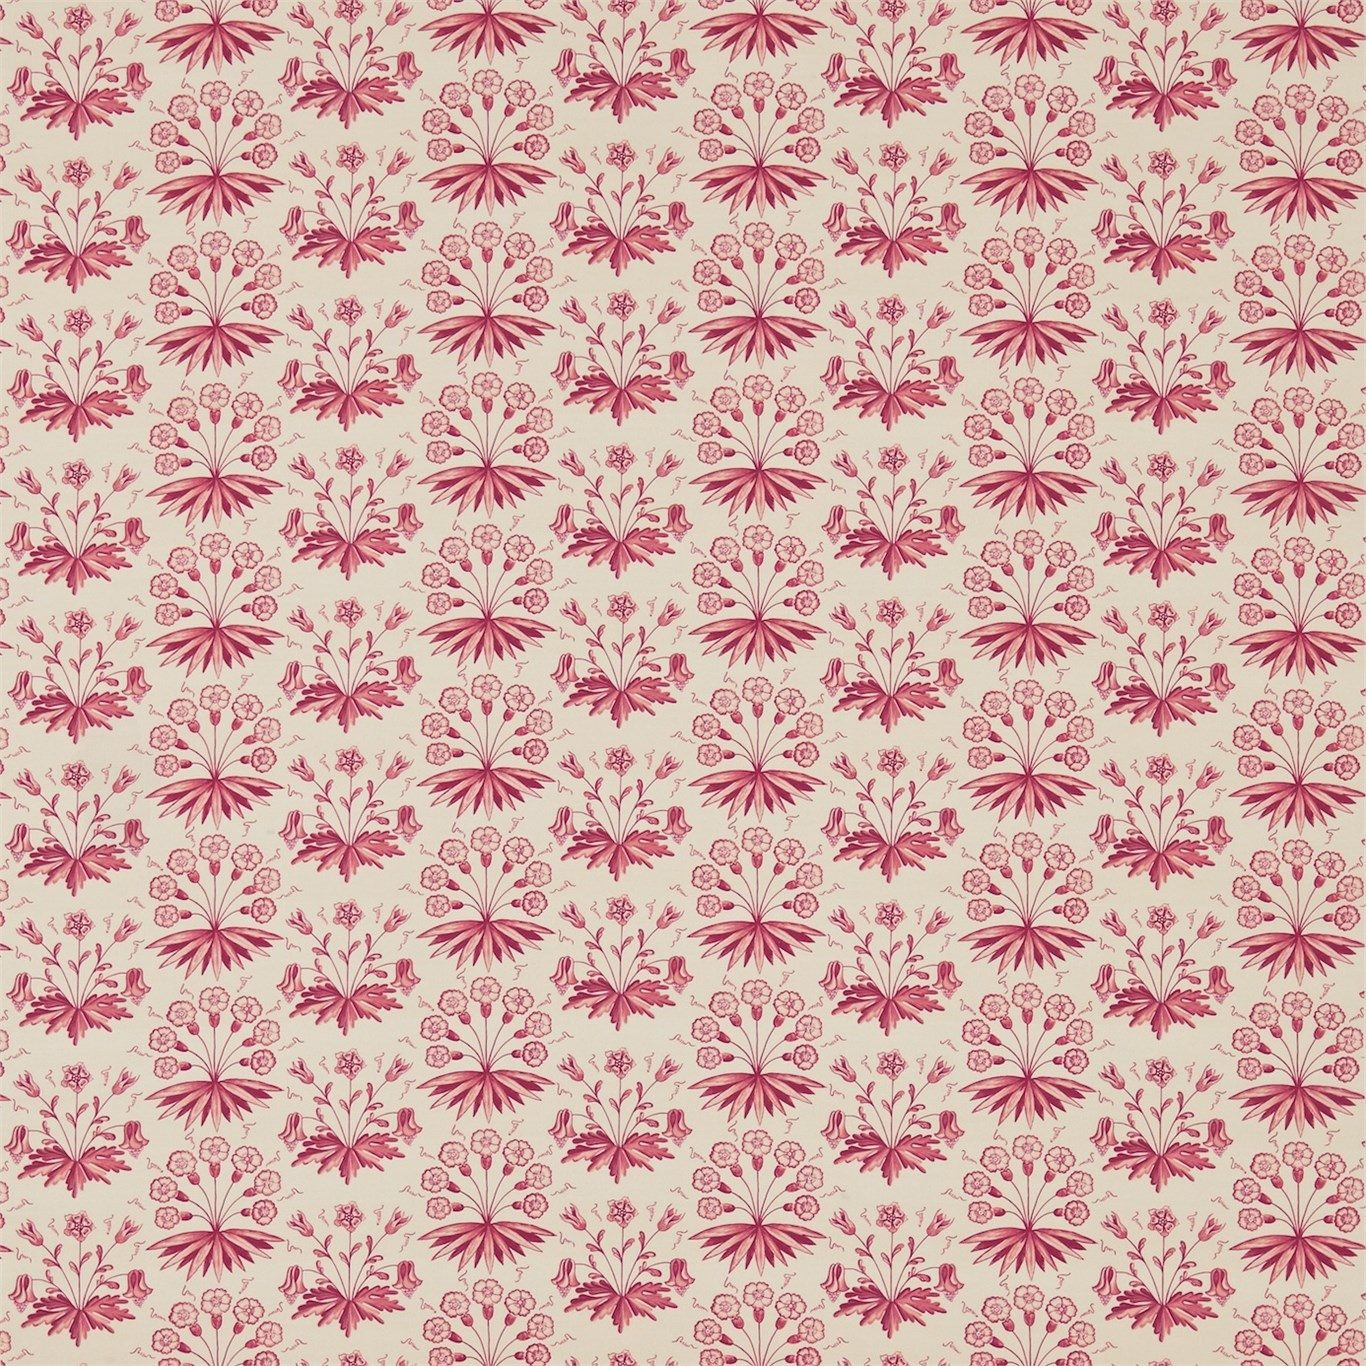 Image of Morris & Co Primrose & Columbine Claret Curtain Fabric 224482